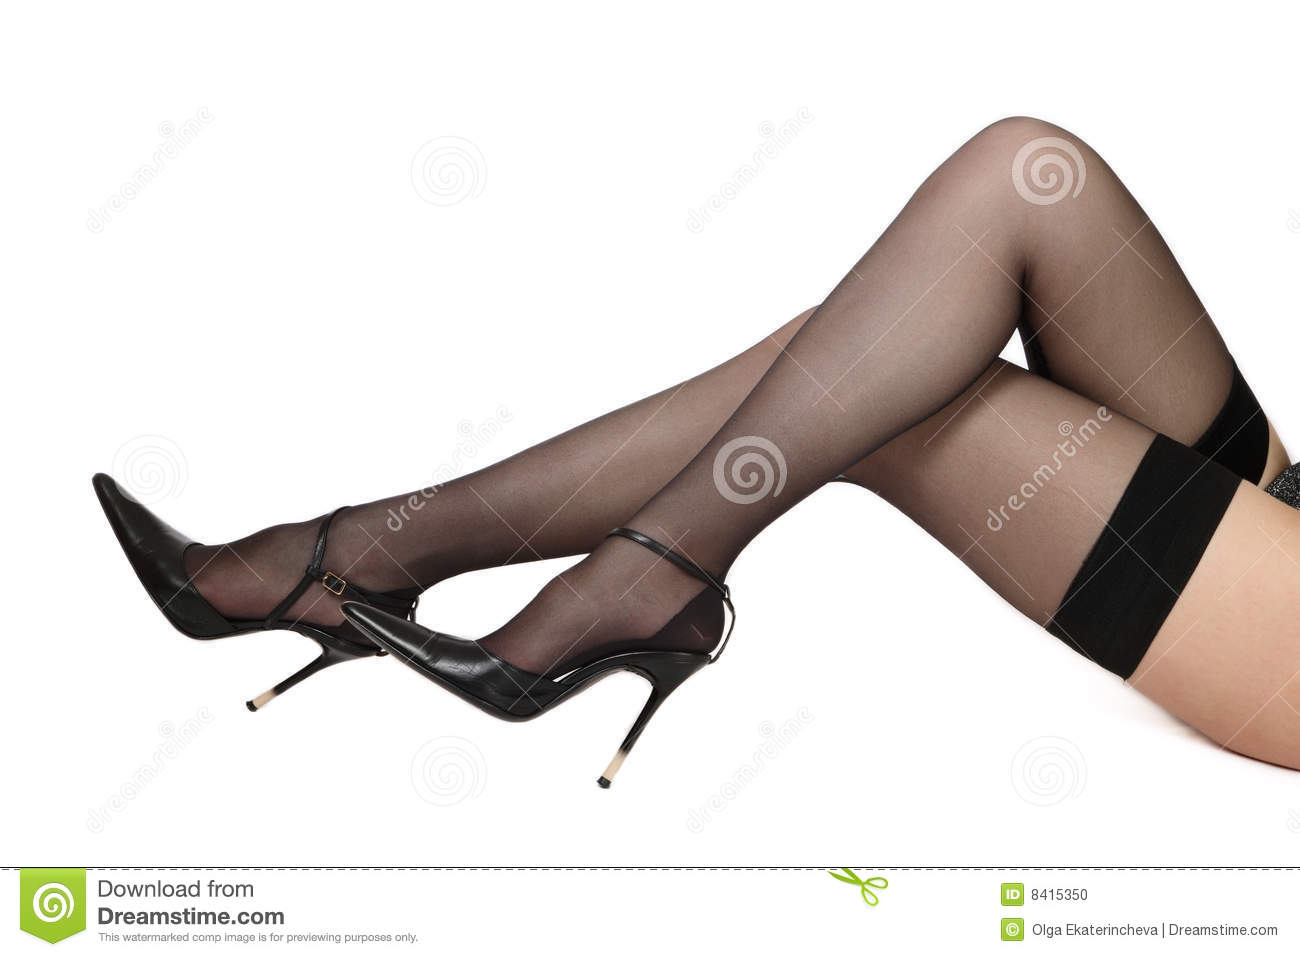 Excellent phrase beautiful legs and stockings you